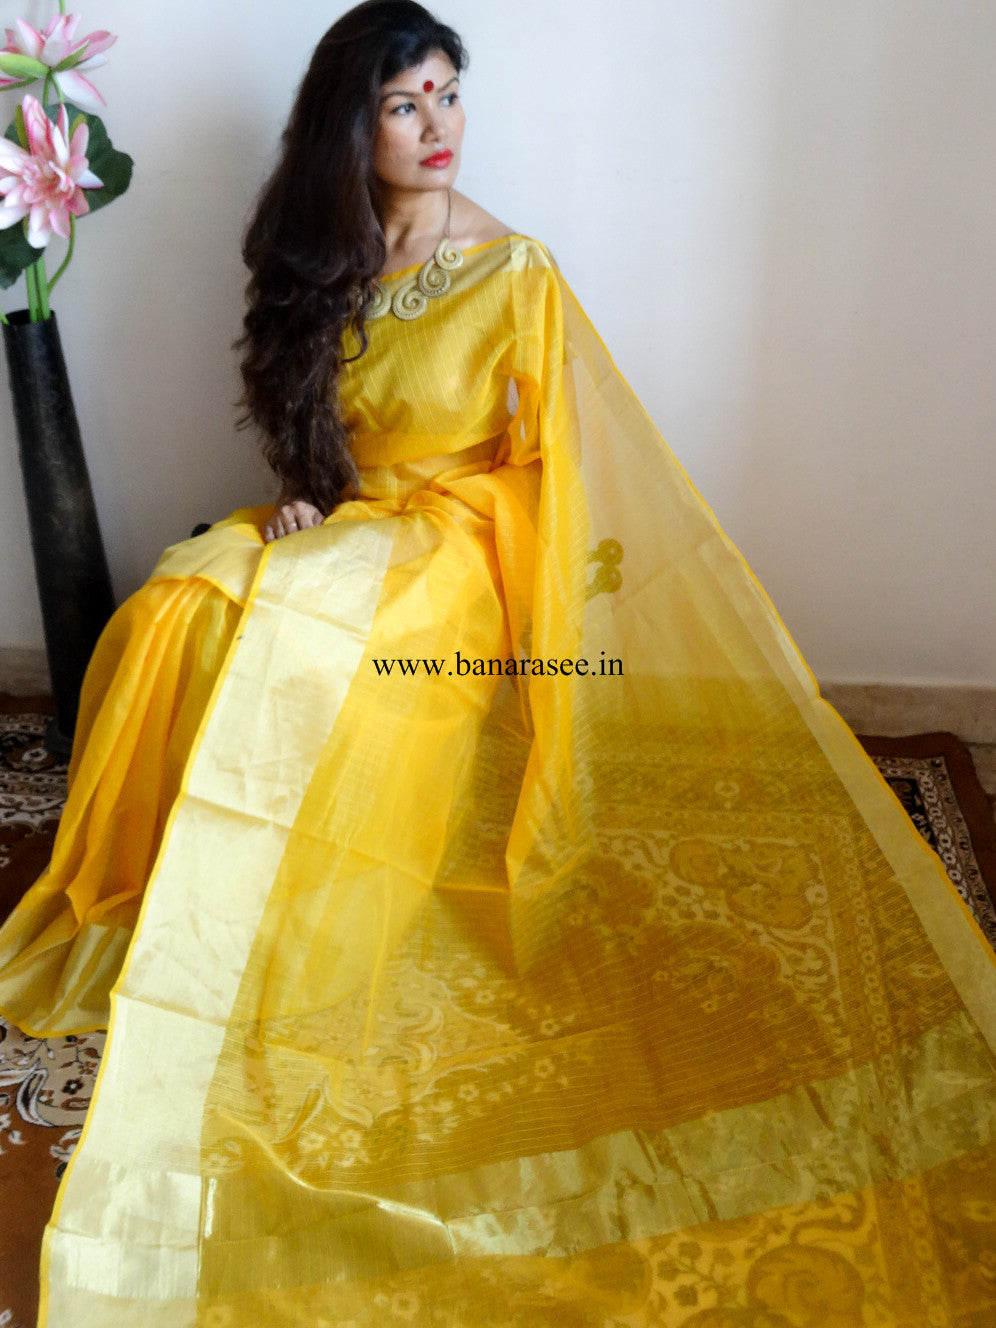 Banarasee/Banarasi Kota Silk Mix Sari-Yellow